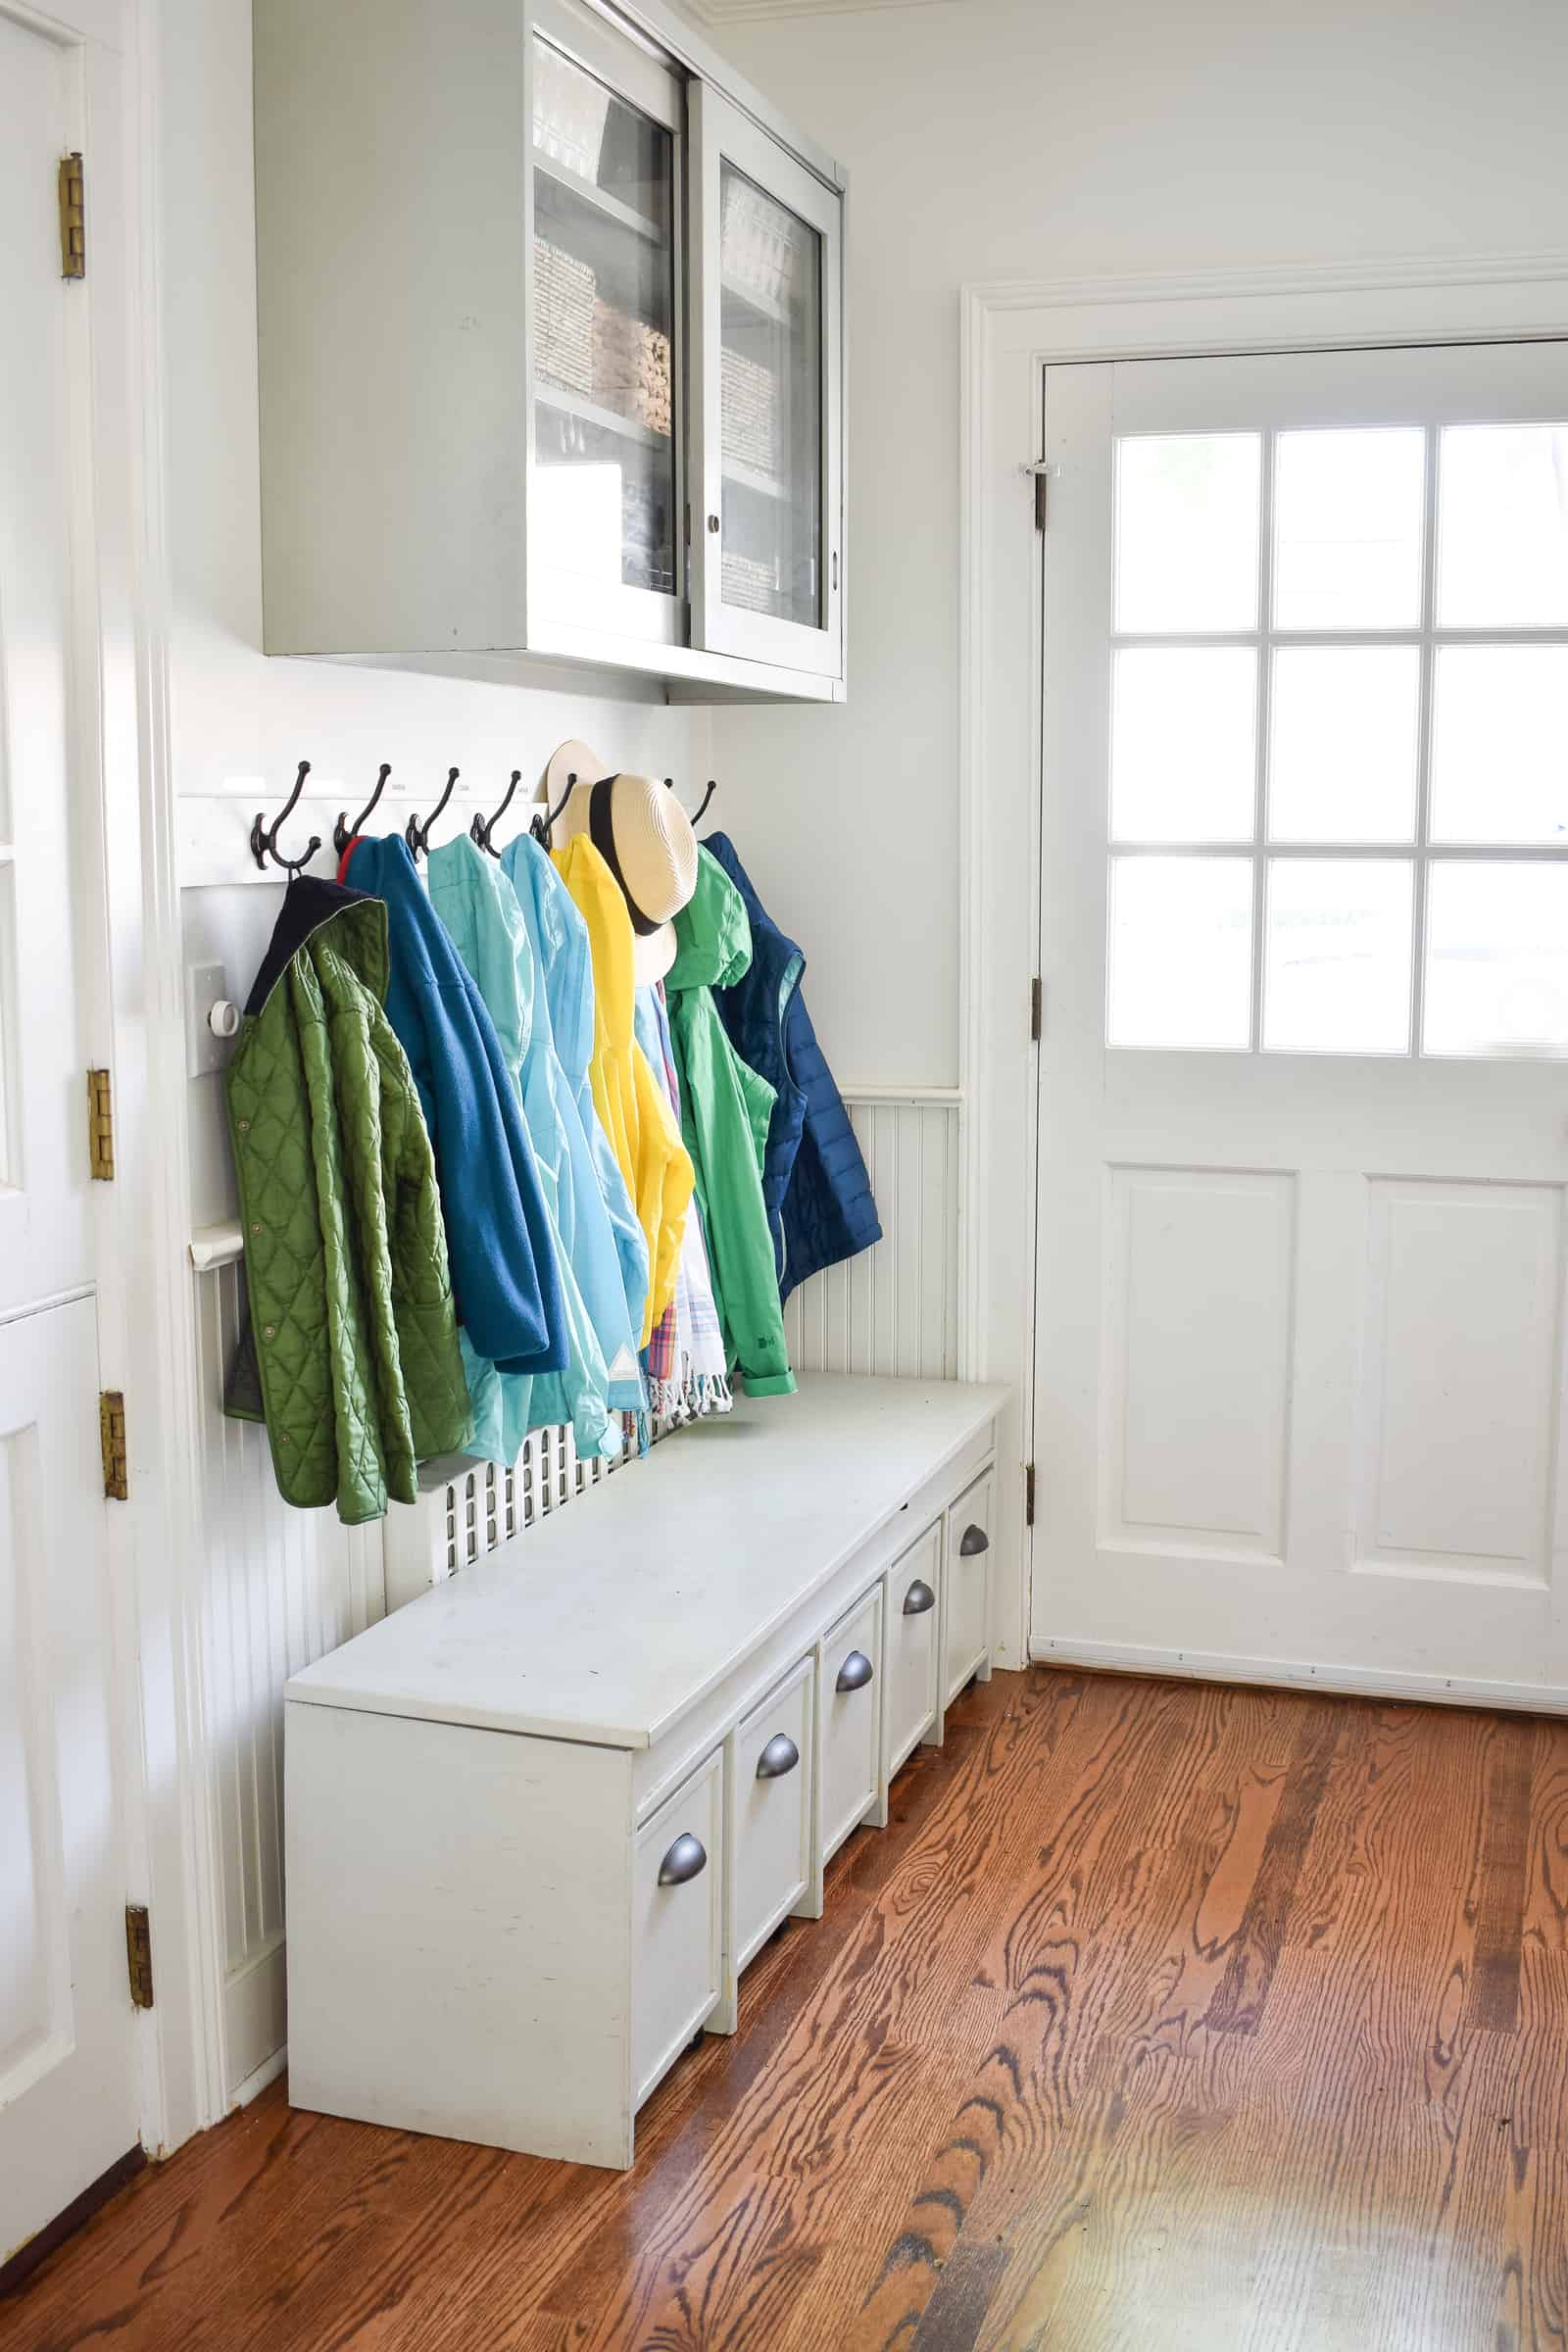 purging closets and drawers to make storage easier